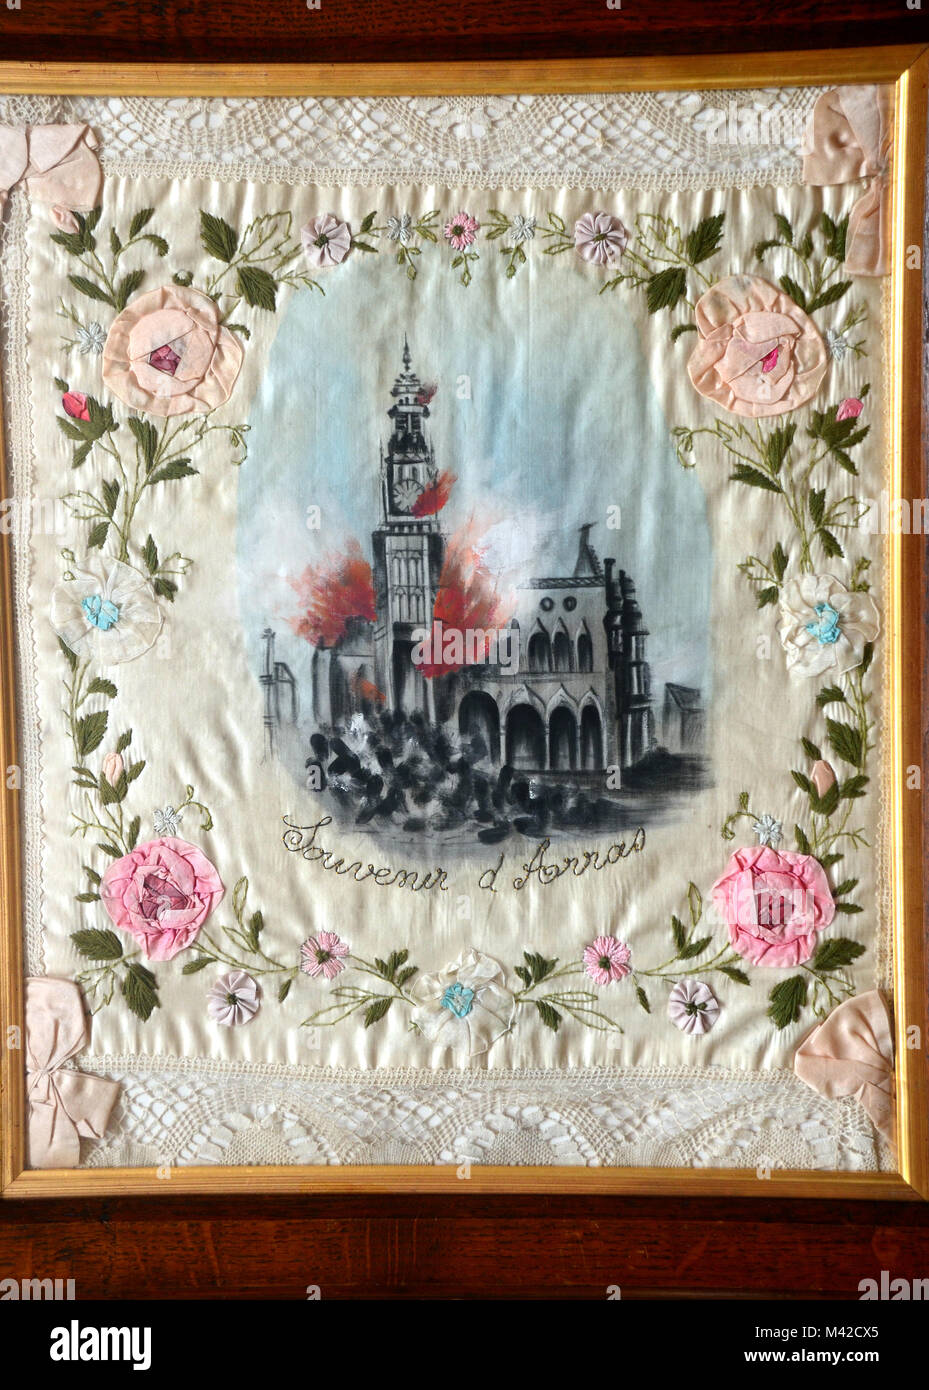 Silk painting and embroidery commemorating ww1 battle of Arras, France 1914 - 1918 - Stock Image